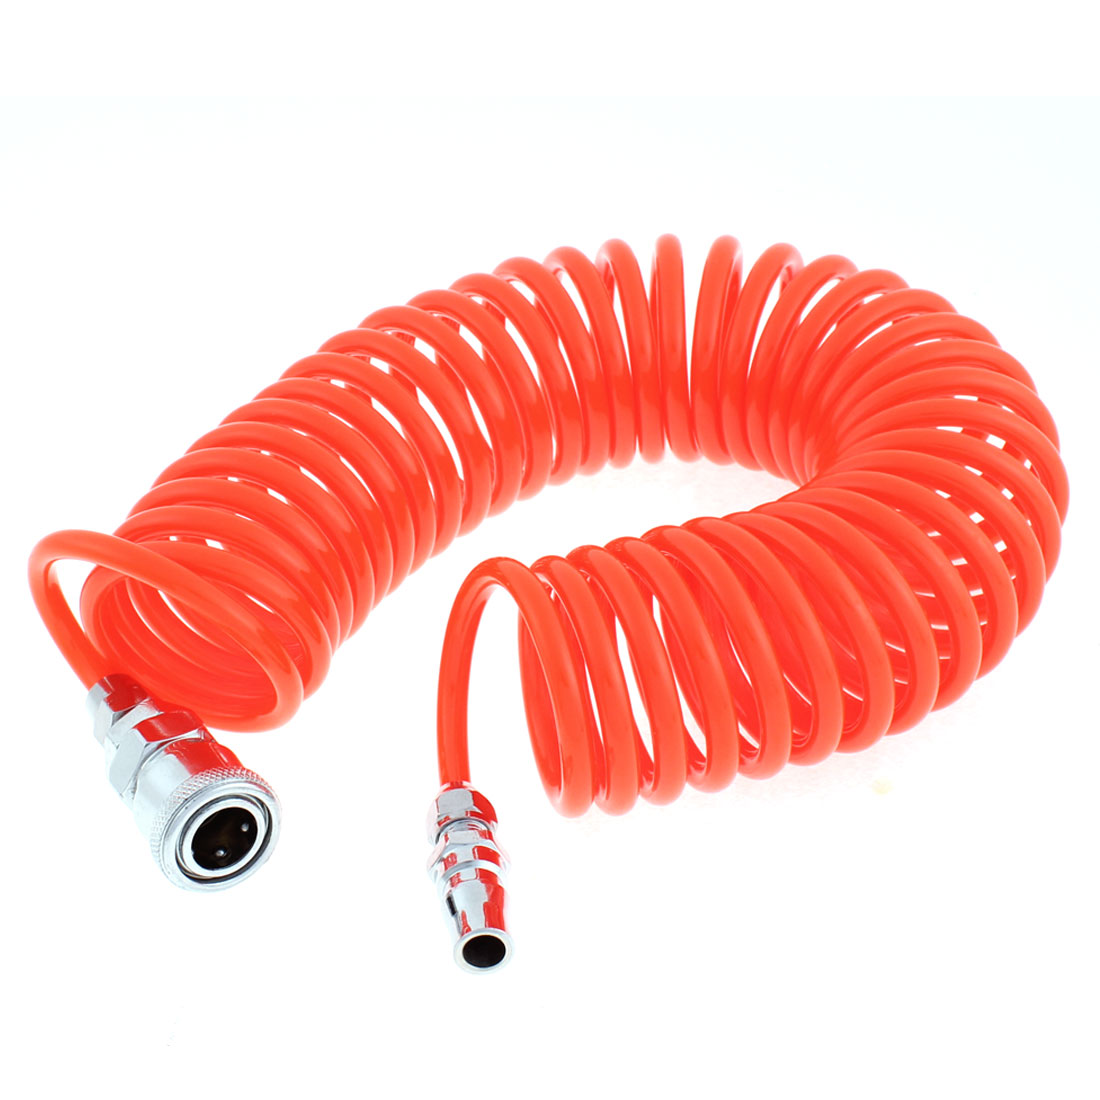 6 Meters Length 6mm x 4mm Polyurethane Coiled Air Hose Pipe Orange